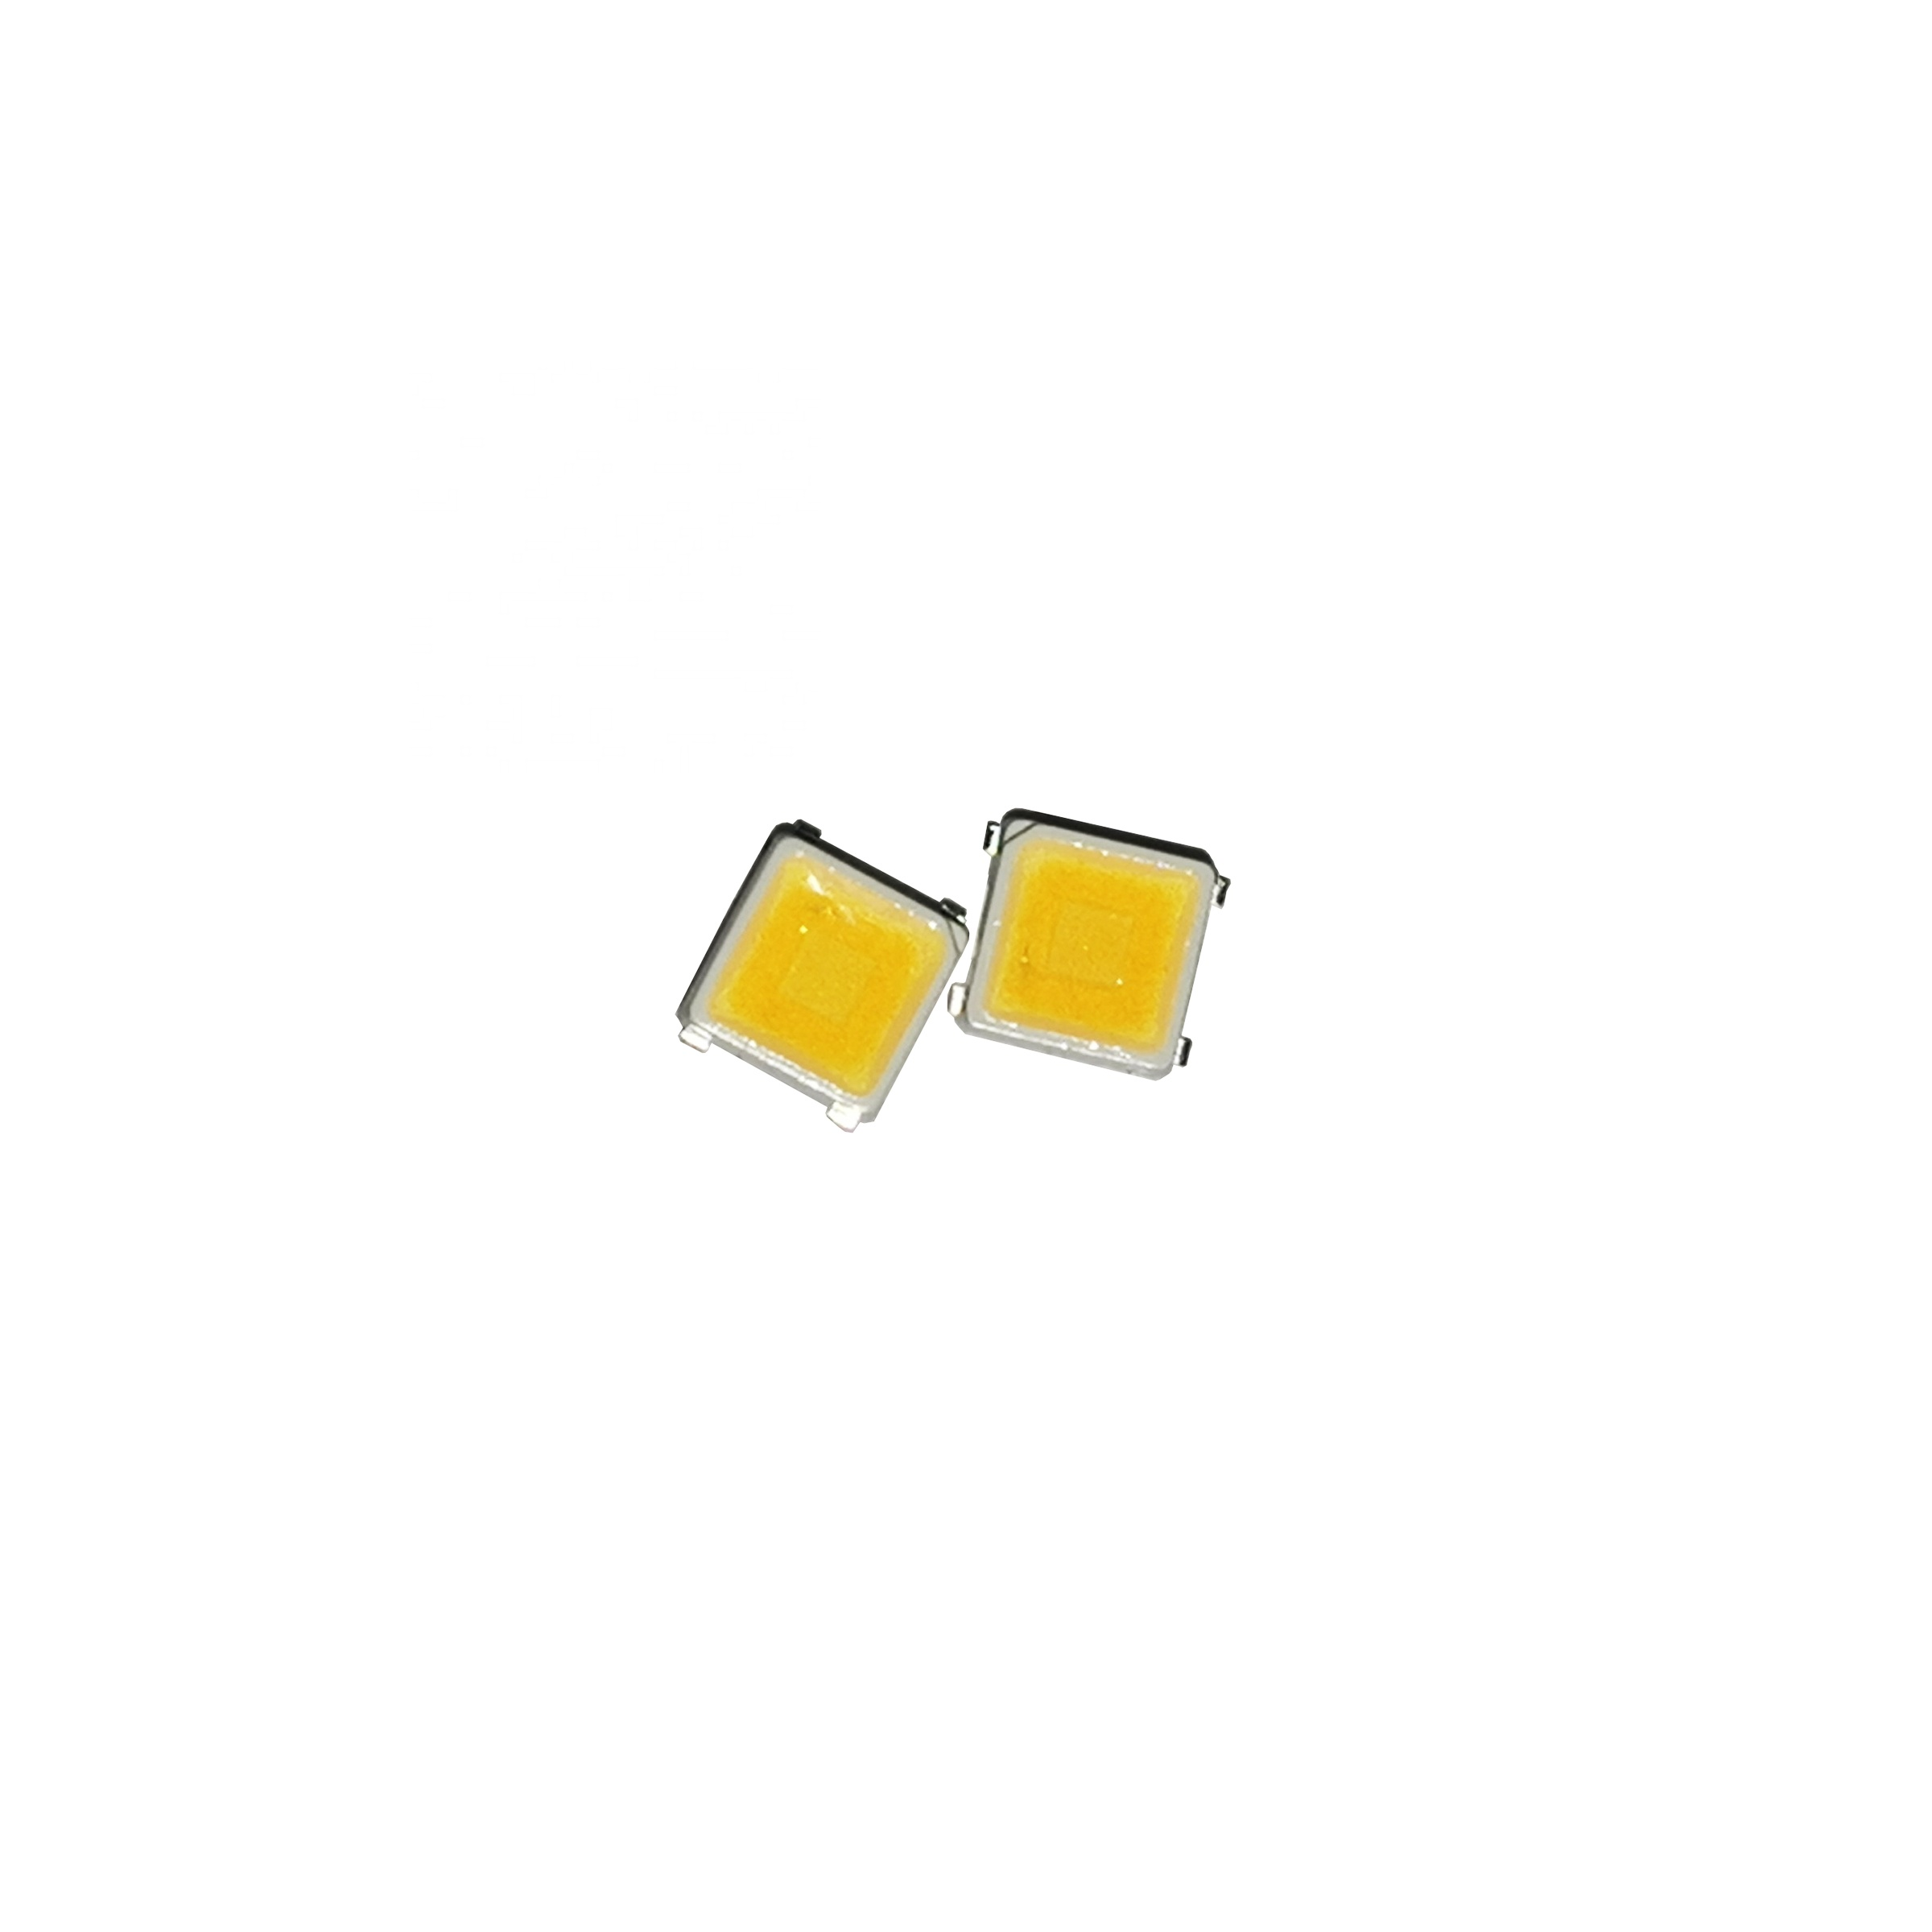 New and Original CRI 80 LM301B Series 3030 Middle Power SMD LED